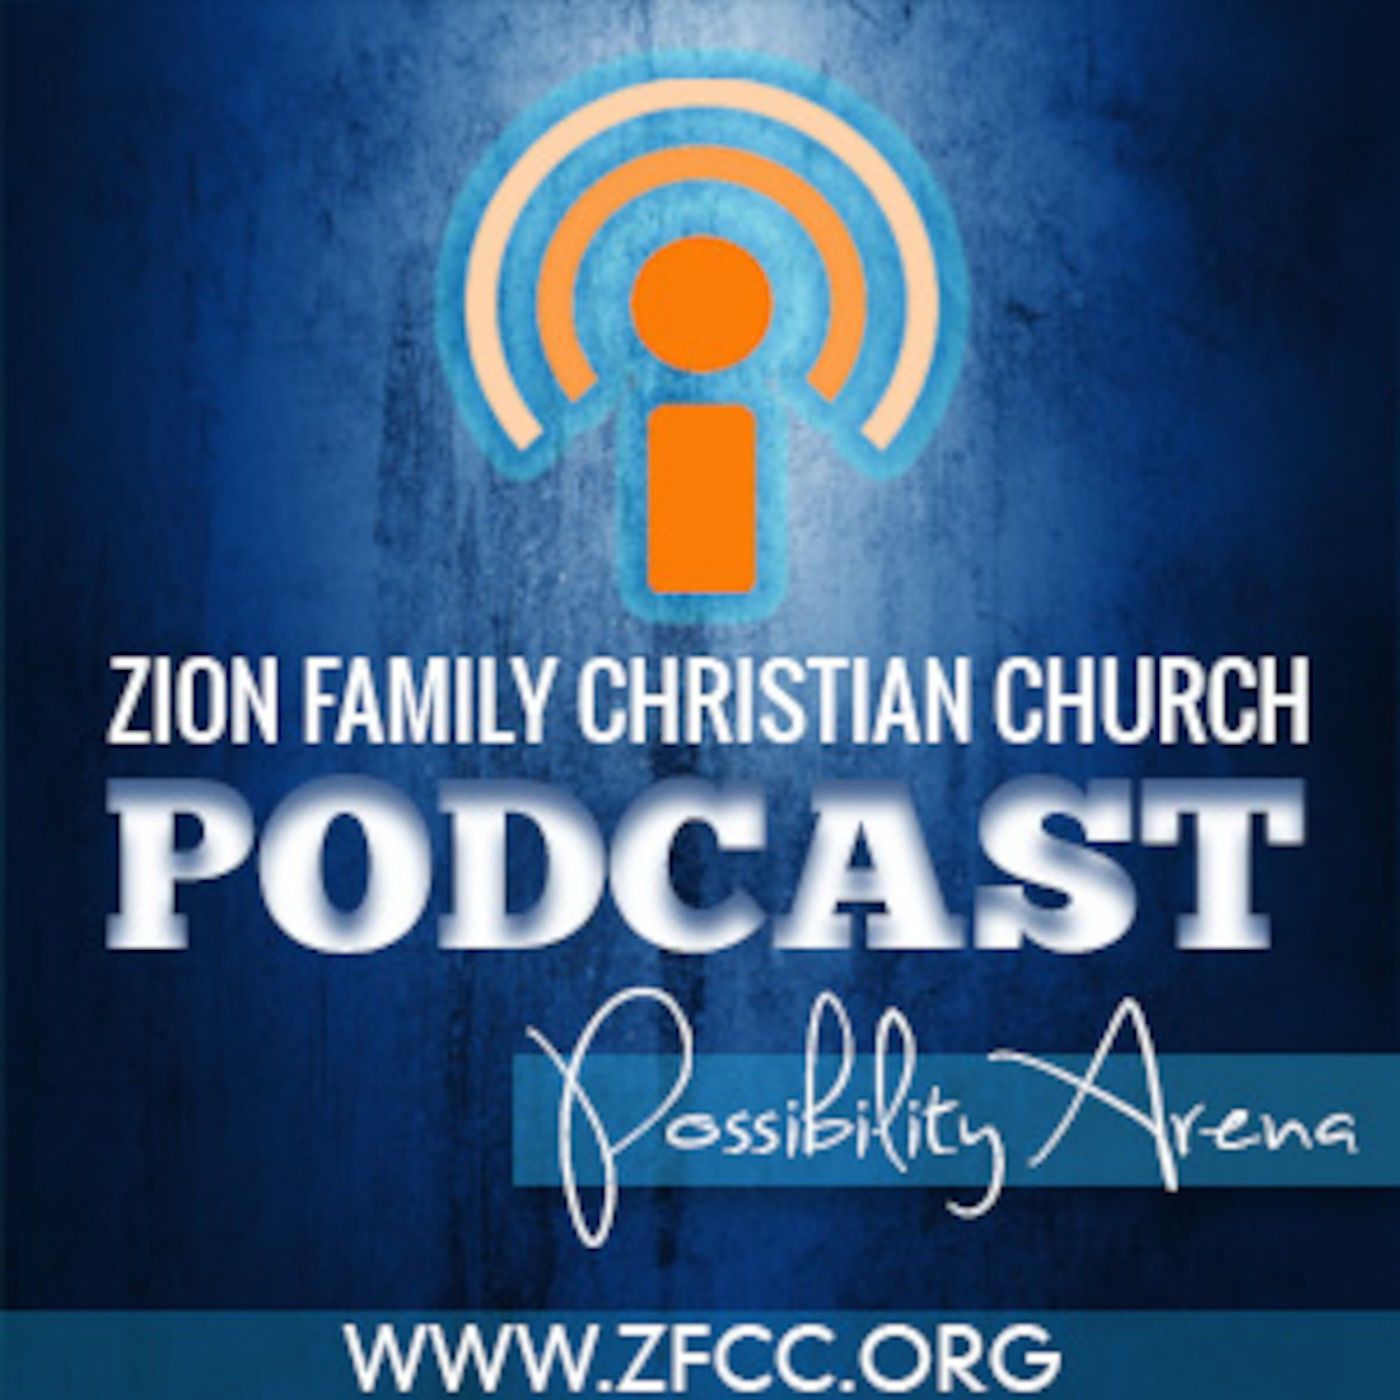 Zion Family Christian Church